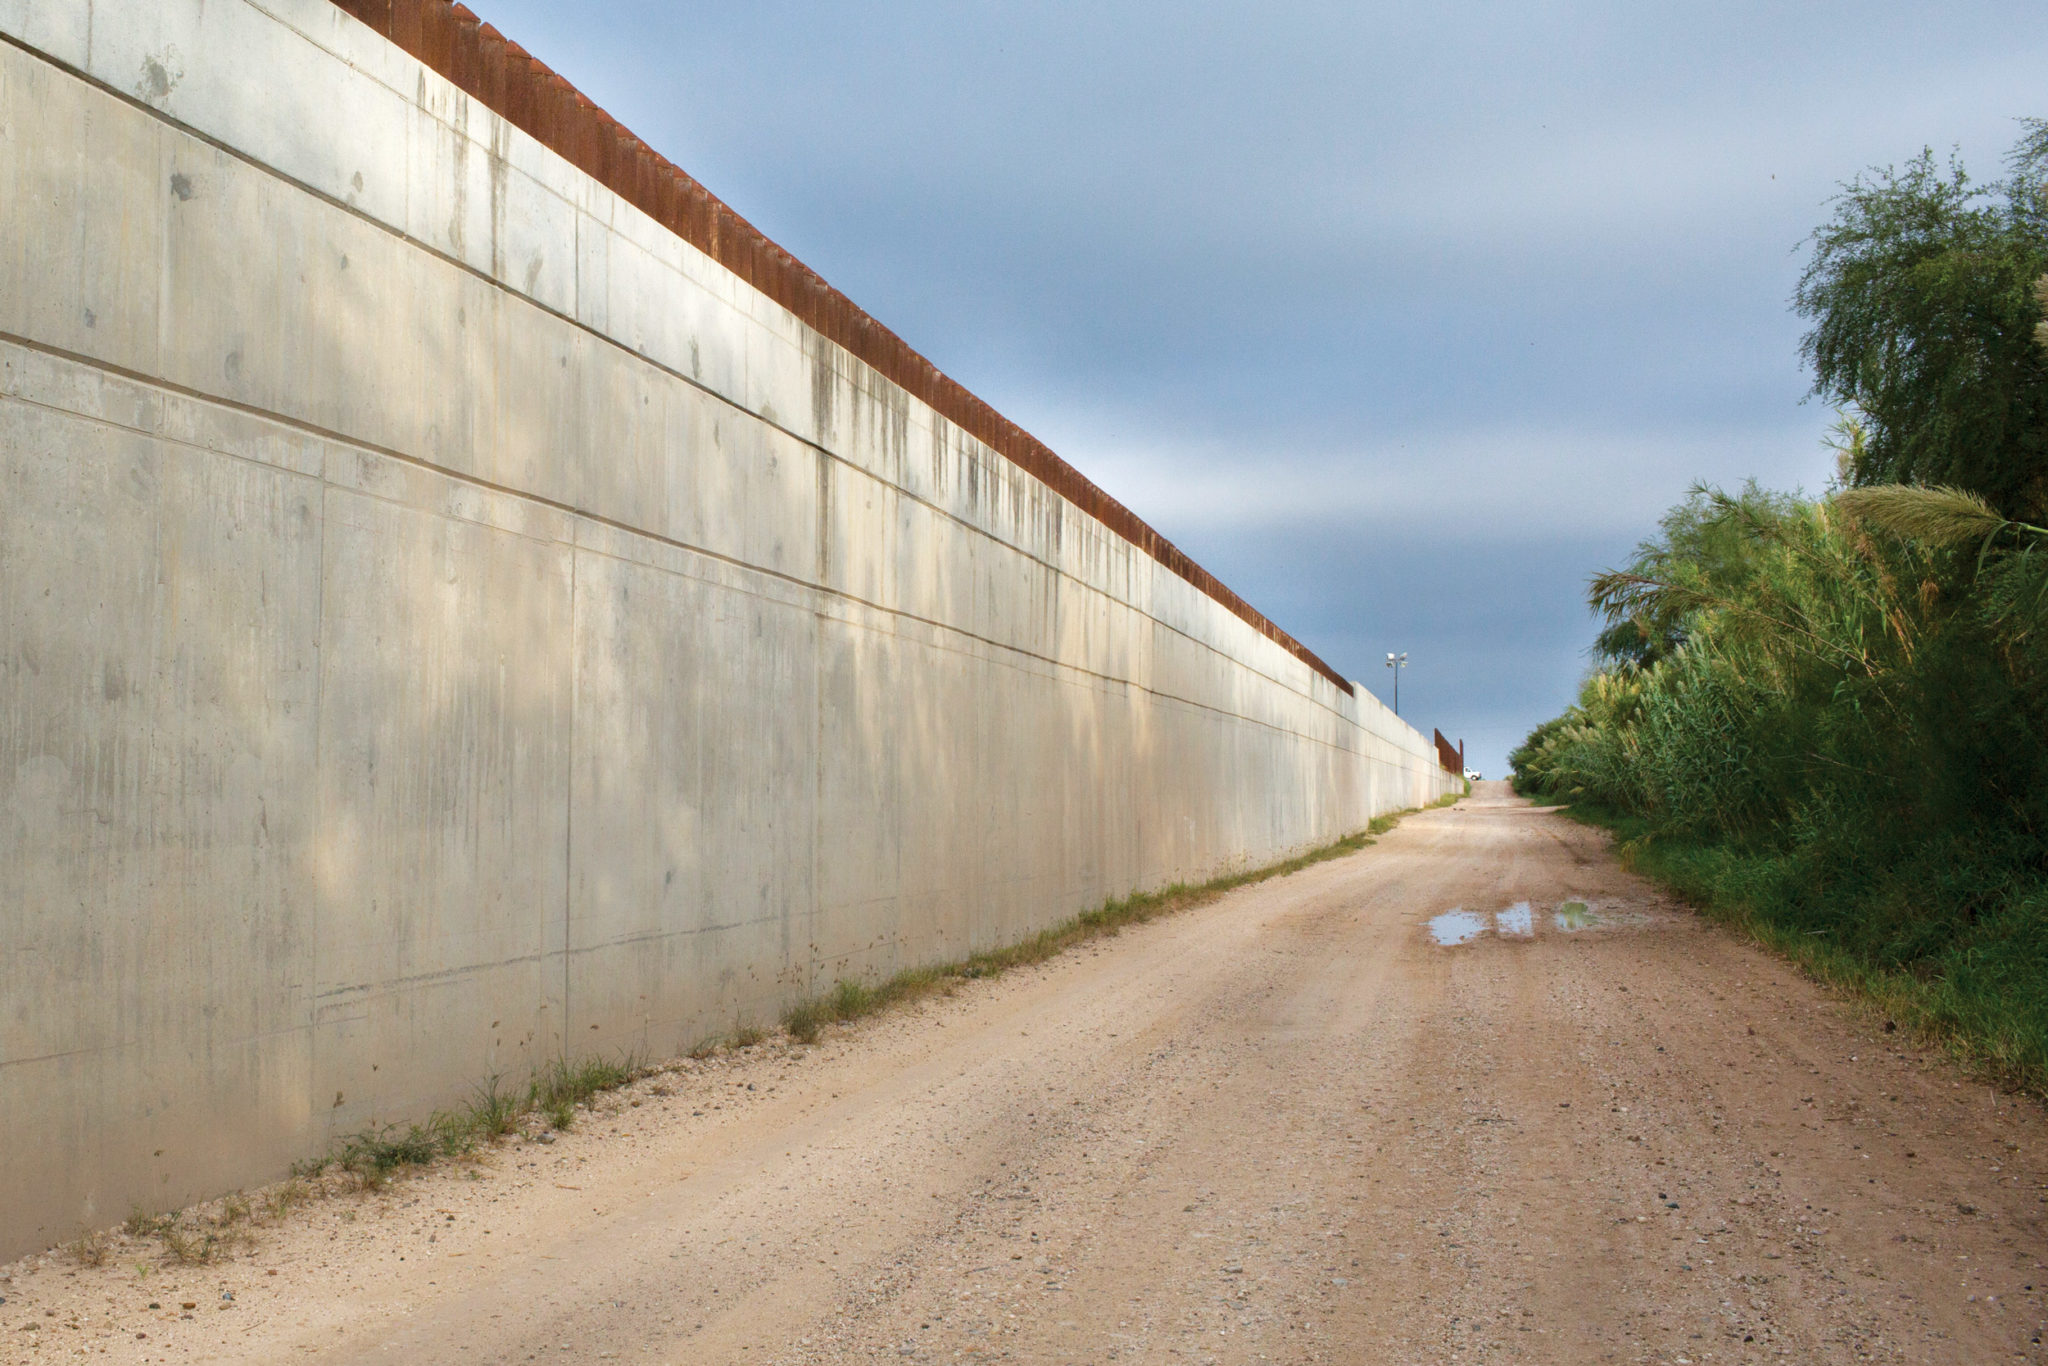 Excluding the hidden costs, Trump's wall is running taxpayers a cool $25 million per mile, up nearly fourfold from just a decade ago.